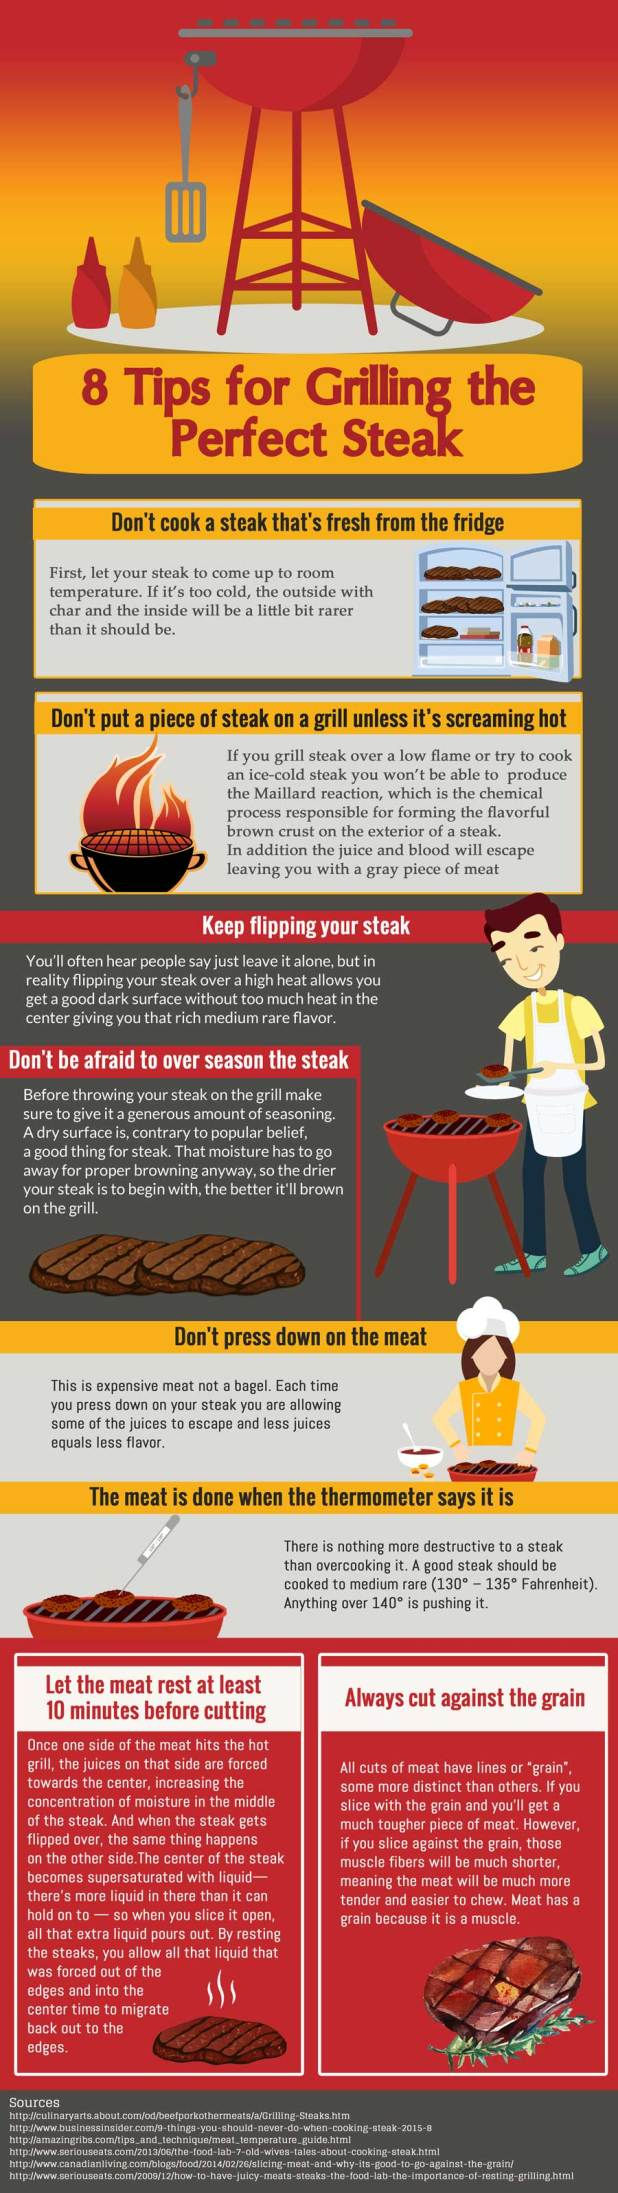 8 Secrets To Grilling Up The Perfect Steak [Infographic]